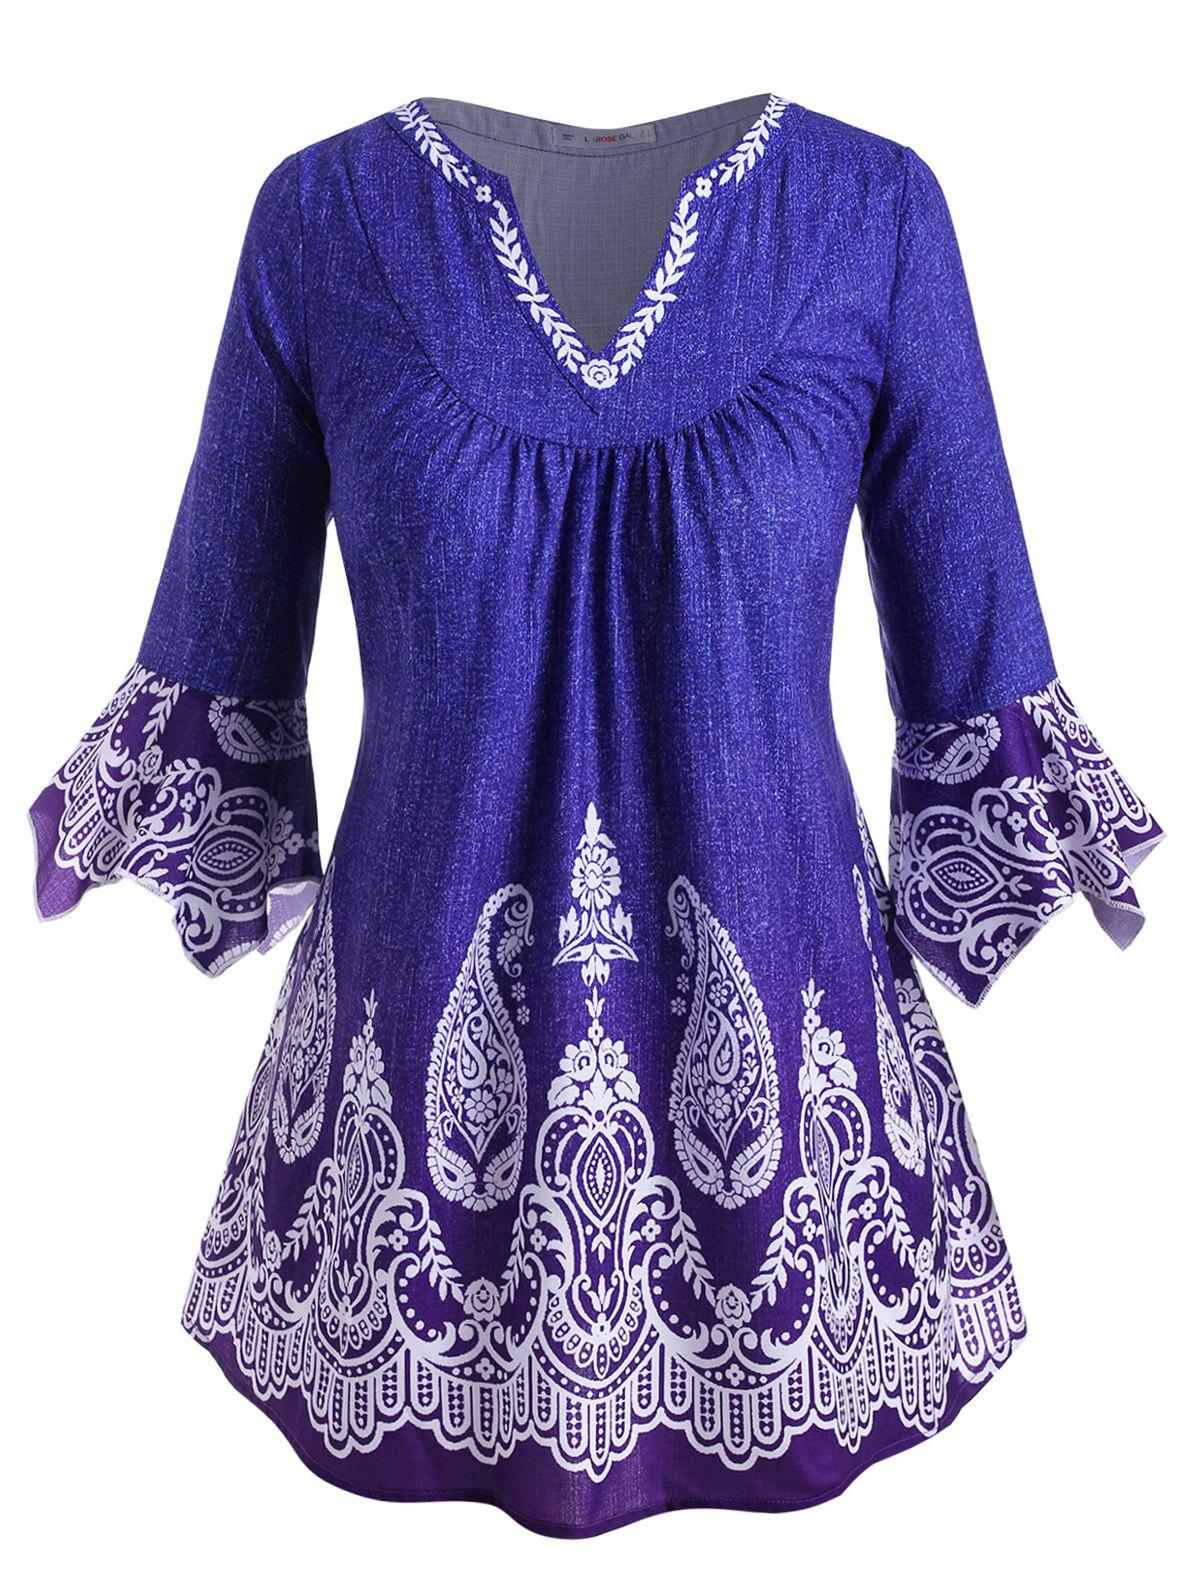 New V-notched Flare Sleeve Paisley Printed Plus Size Blouse